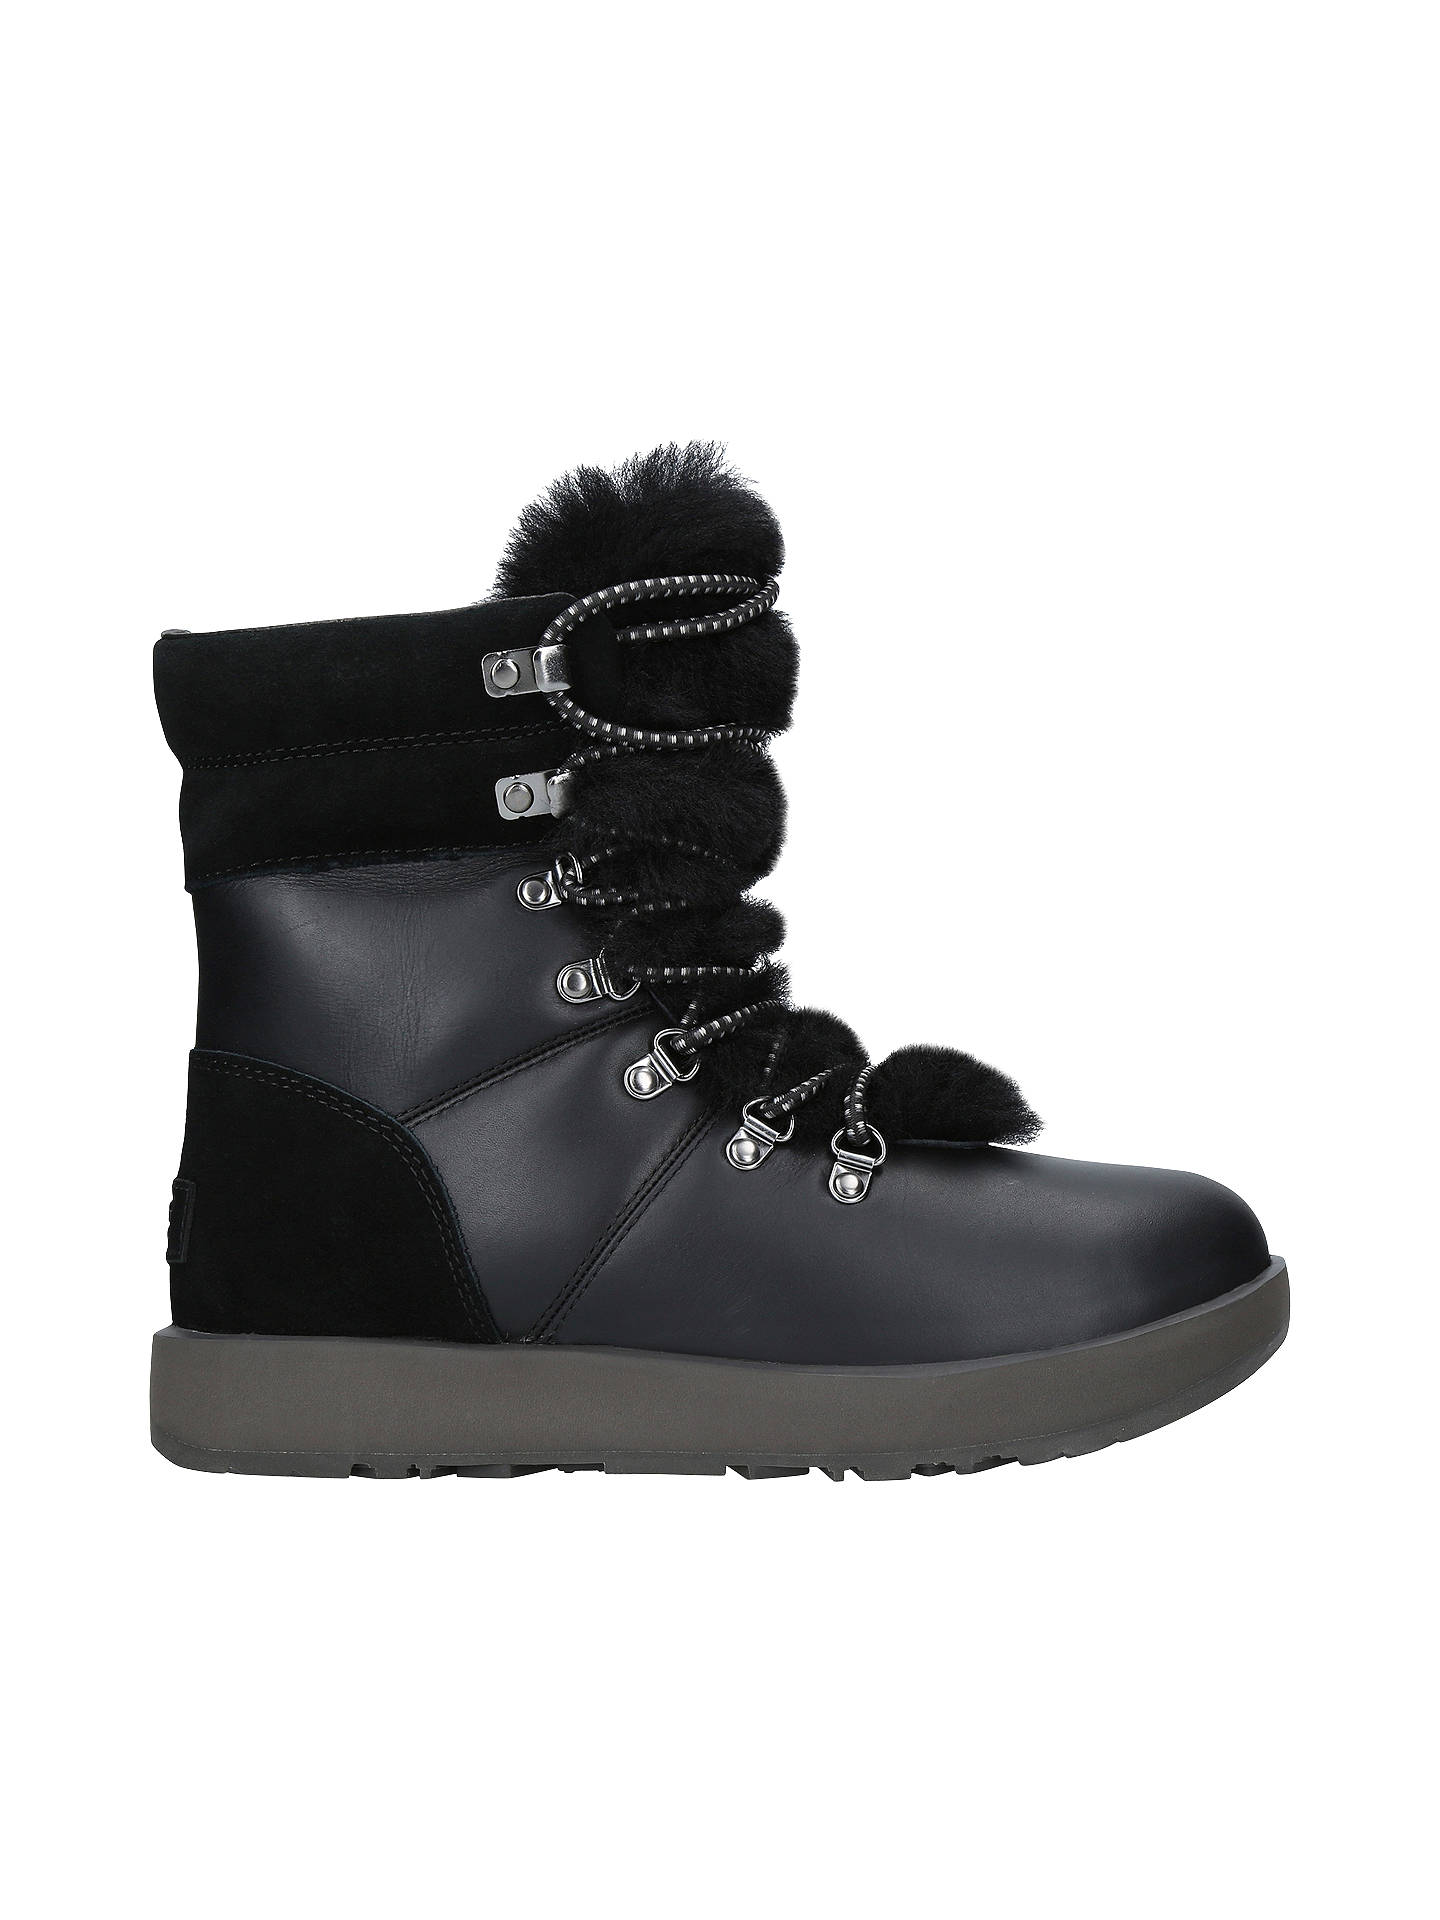 f5469914603 UGG Viki Waterproof Ankle Boots, Black Leather at John Lewis & Partners